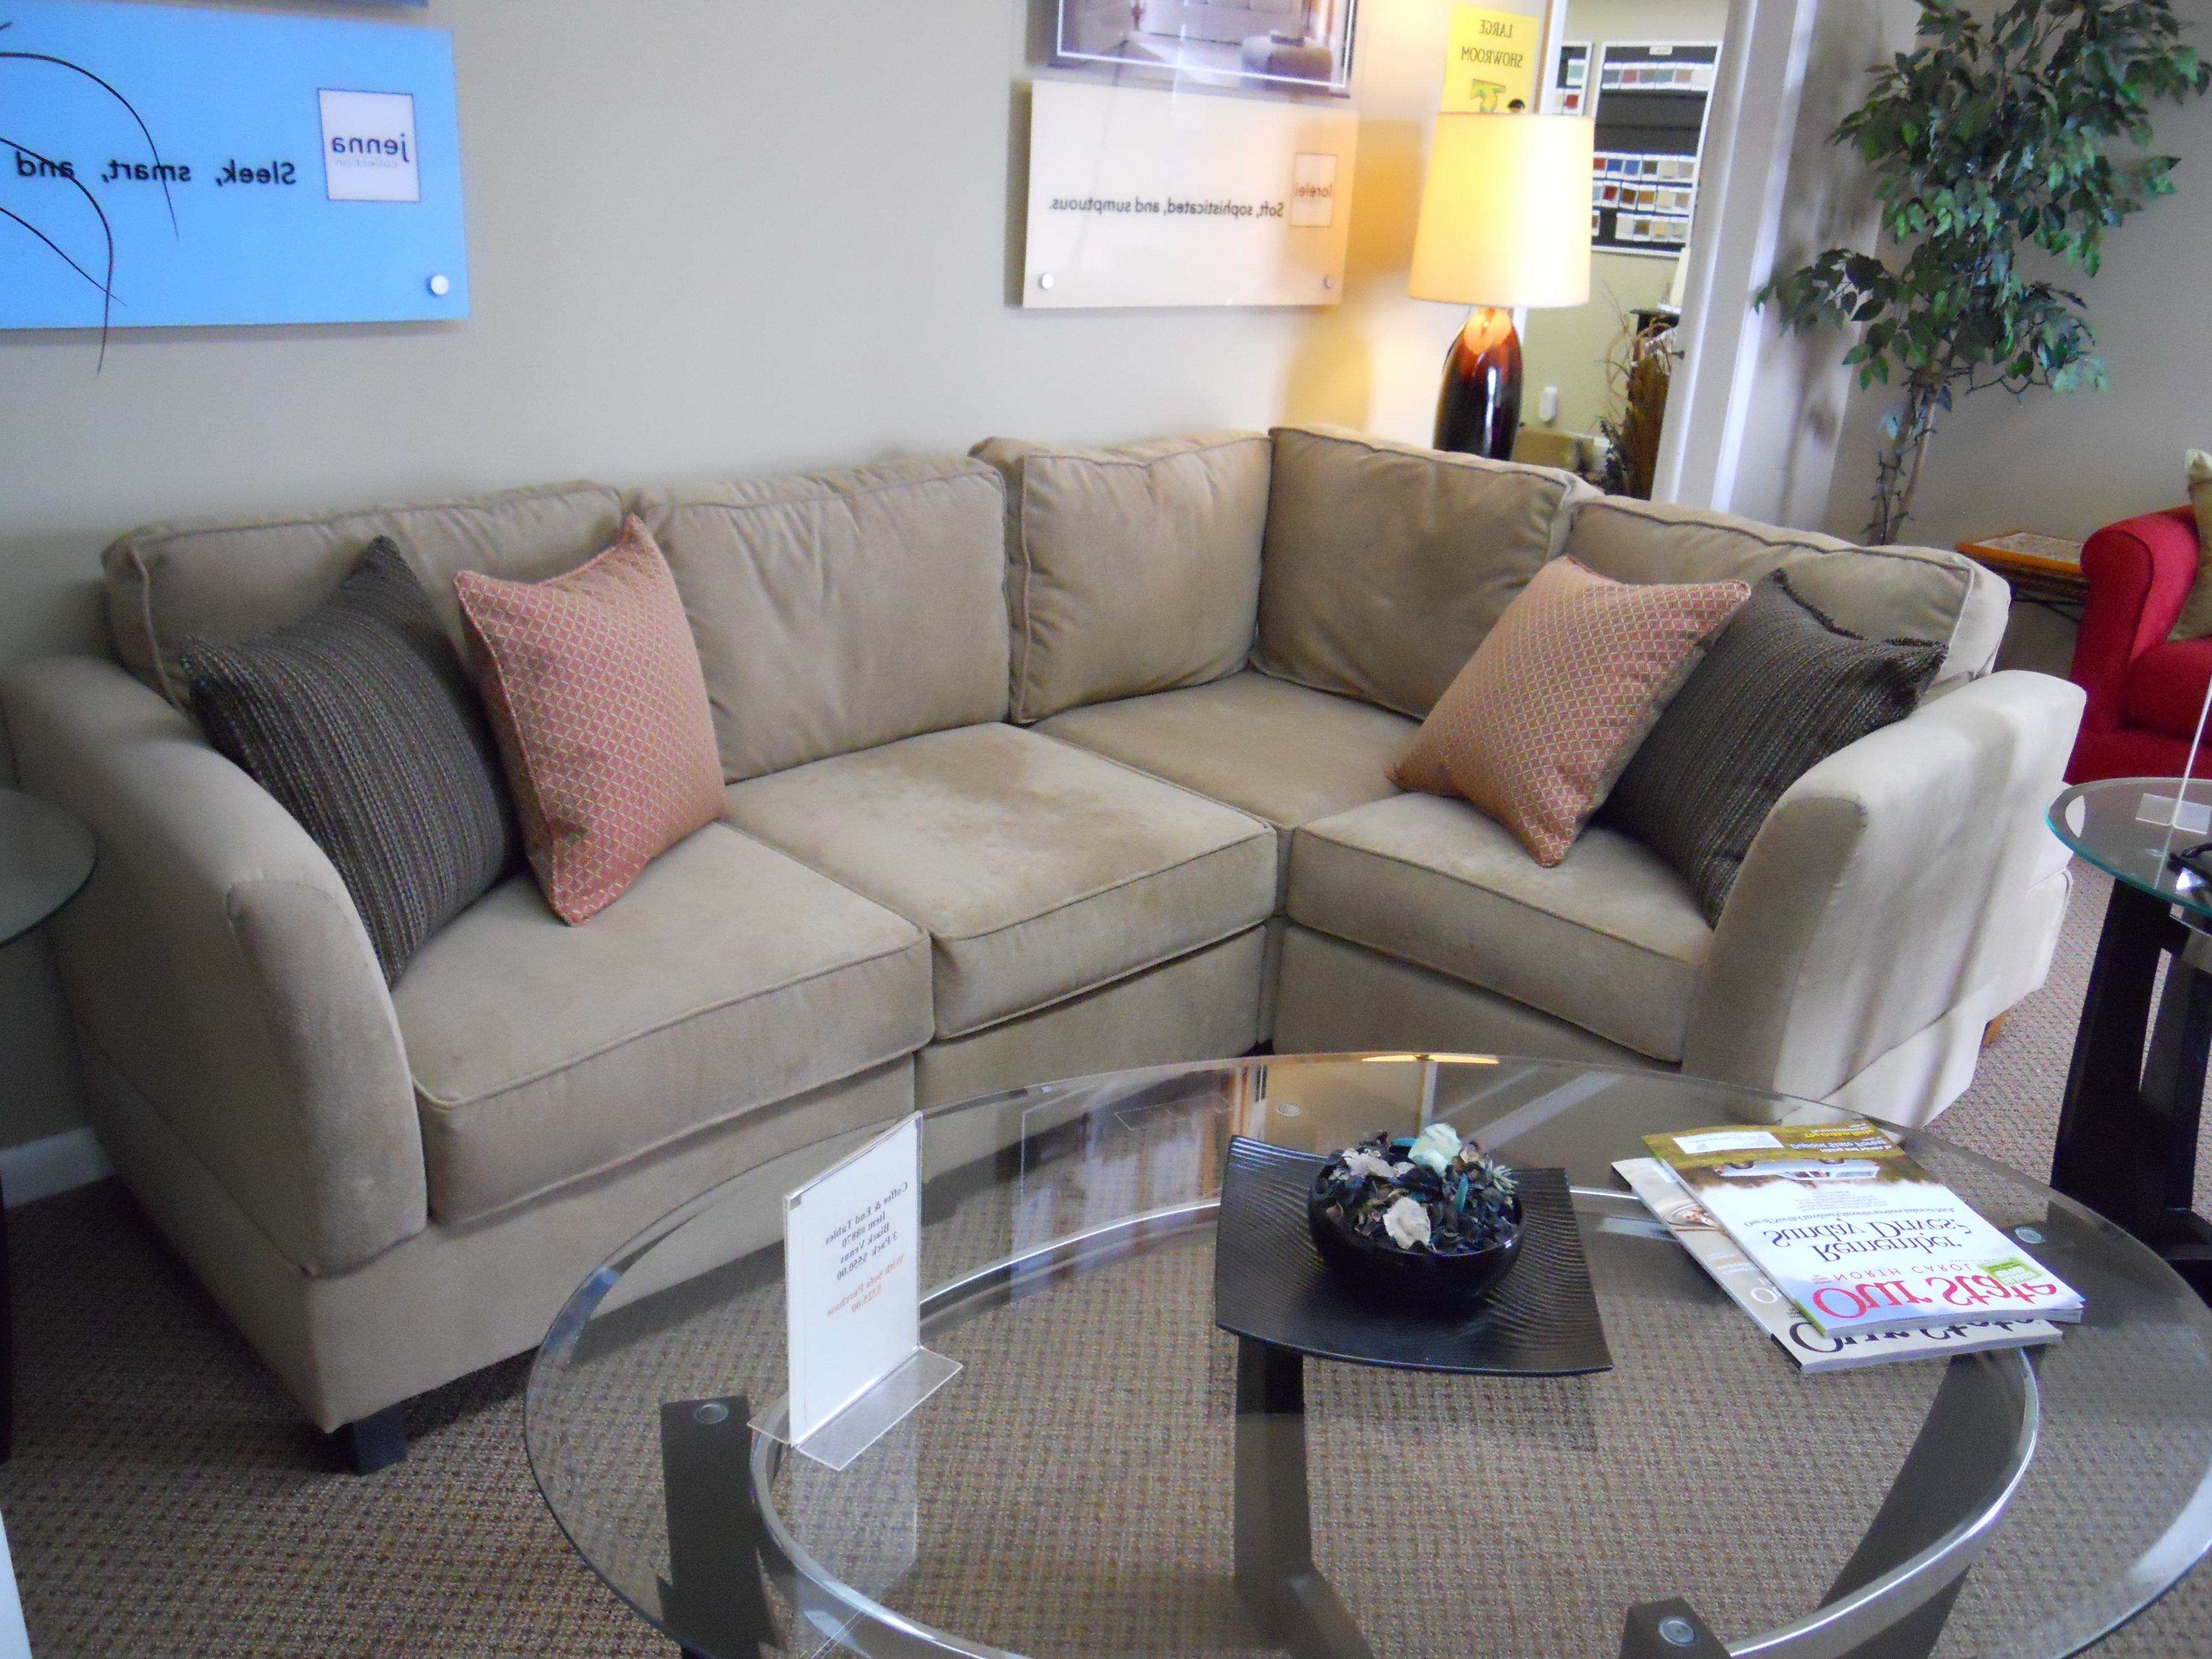 Sectional Sofas In Canada Intended For Fashionable Perfect Apartment Sectional Sofa 51 Contemporary Sofa Inspiration (View 11 of 15)